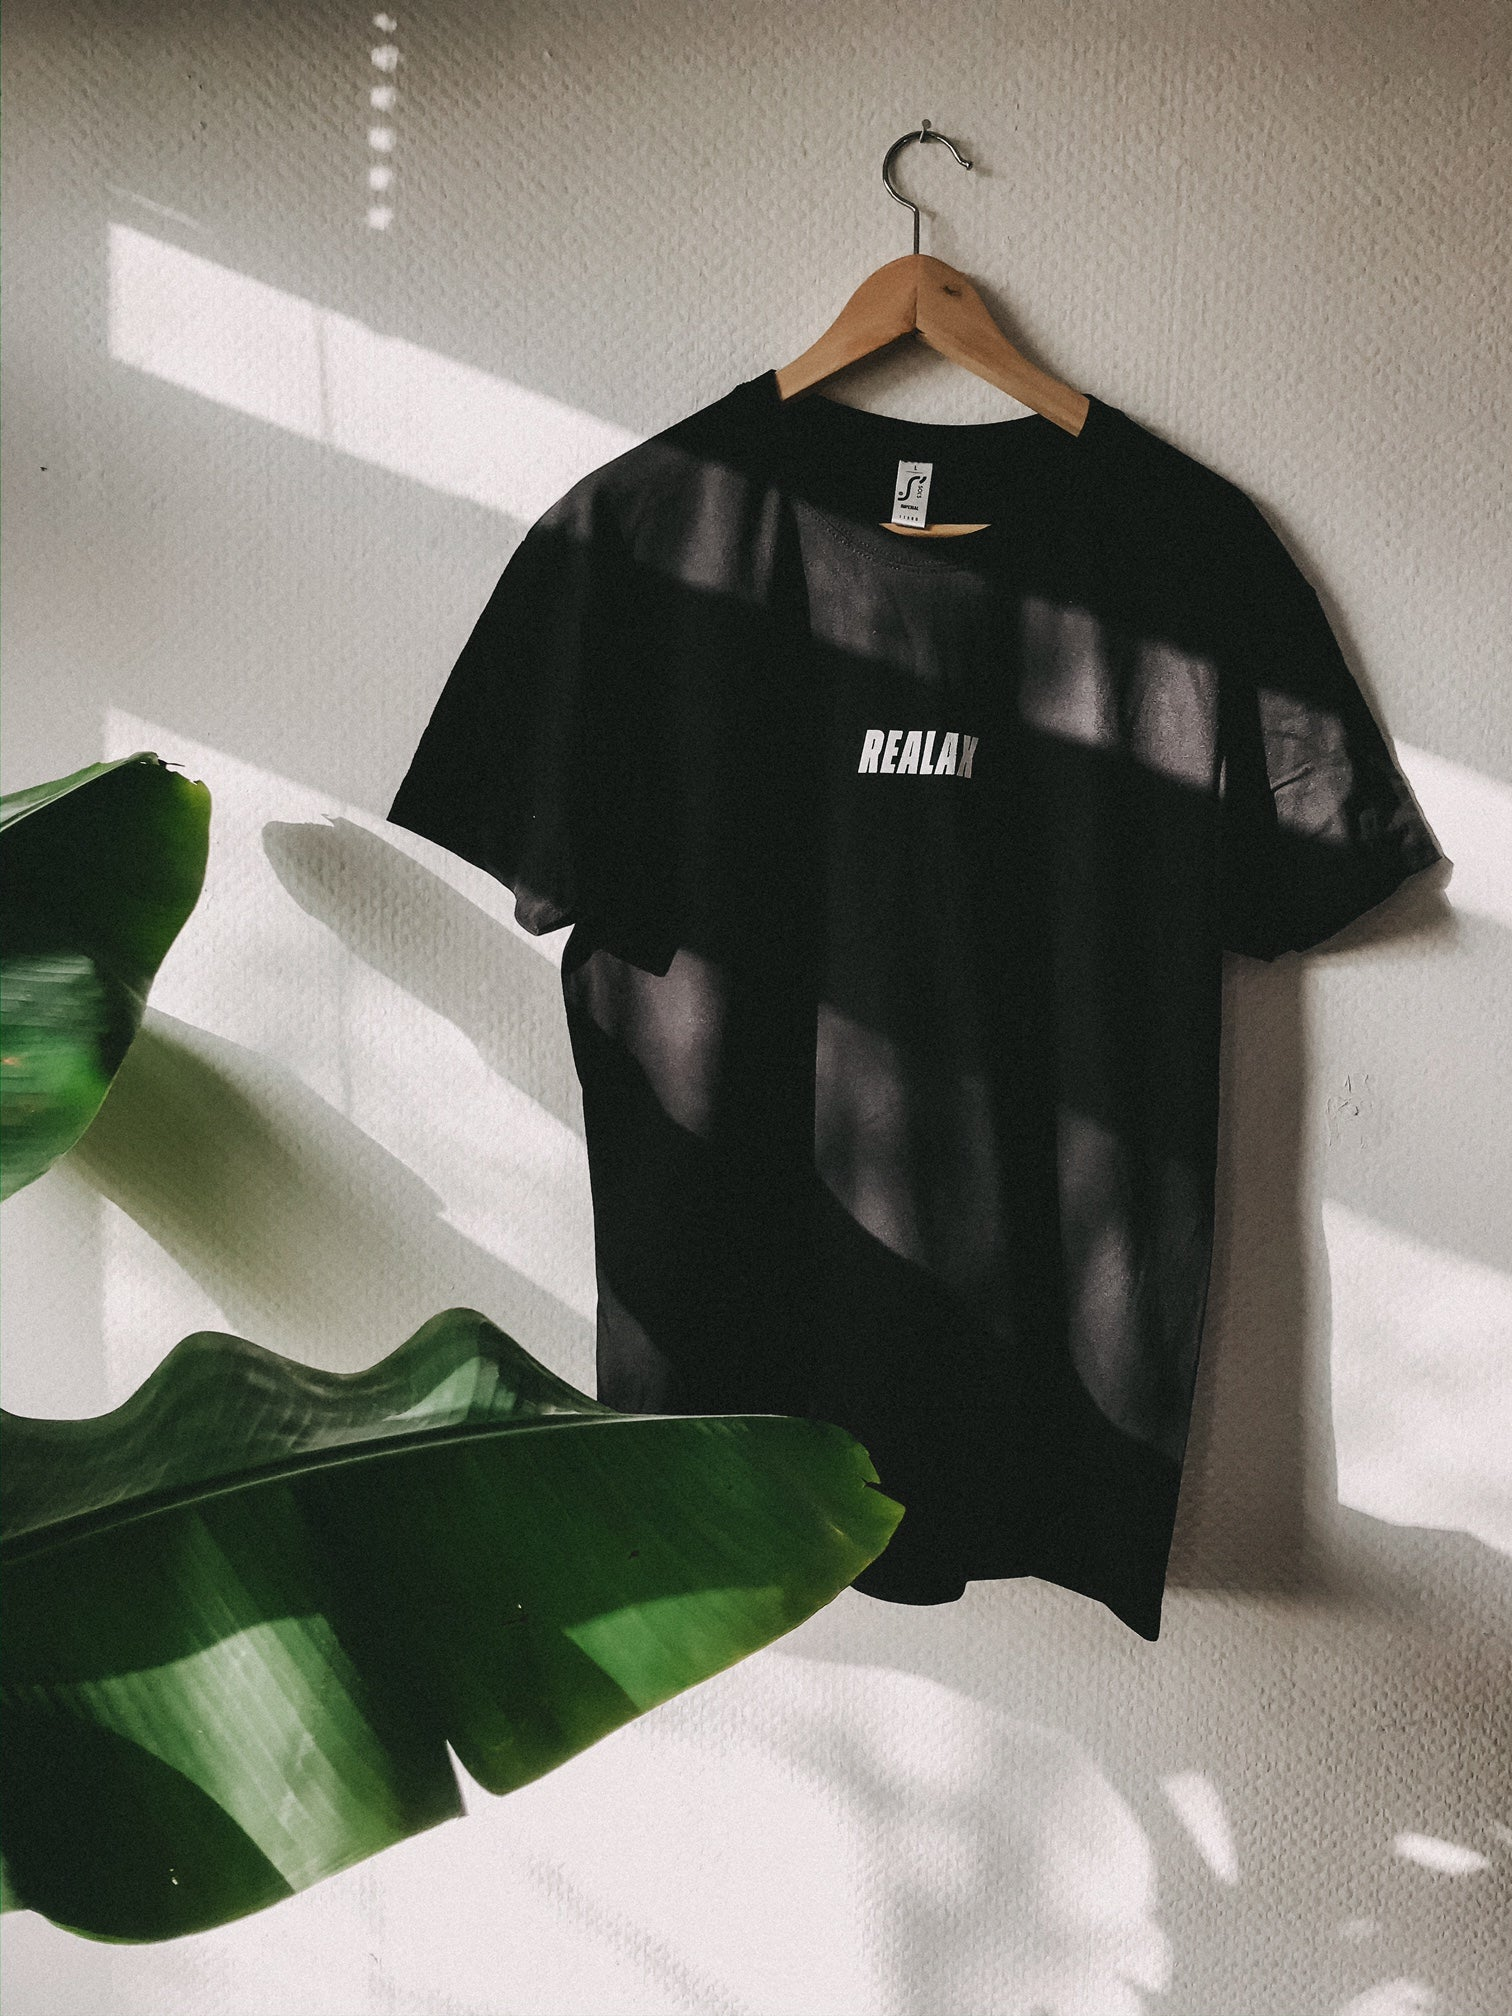 Image of realax shirt